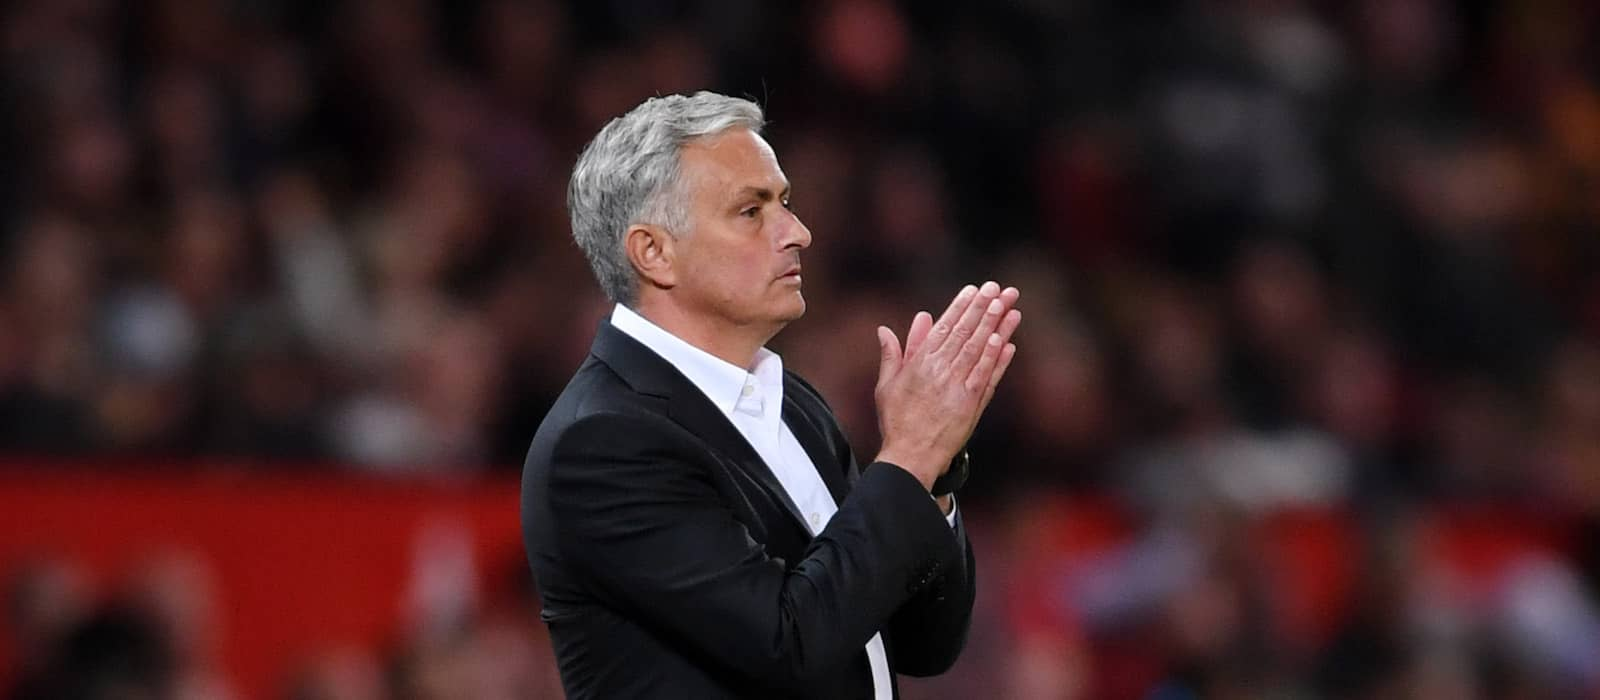 Video: Mourinho with unusual gesture at Old Trafford towards Manchester United fans